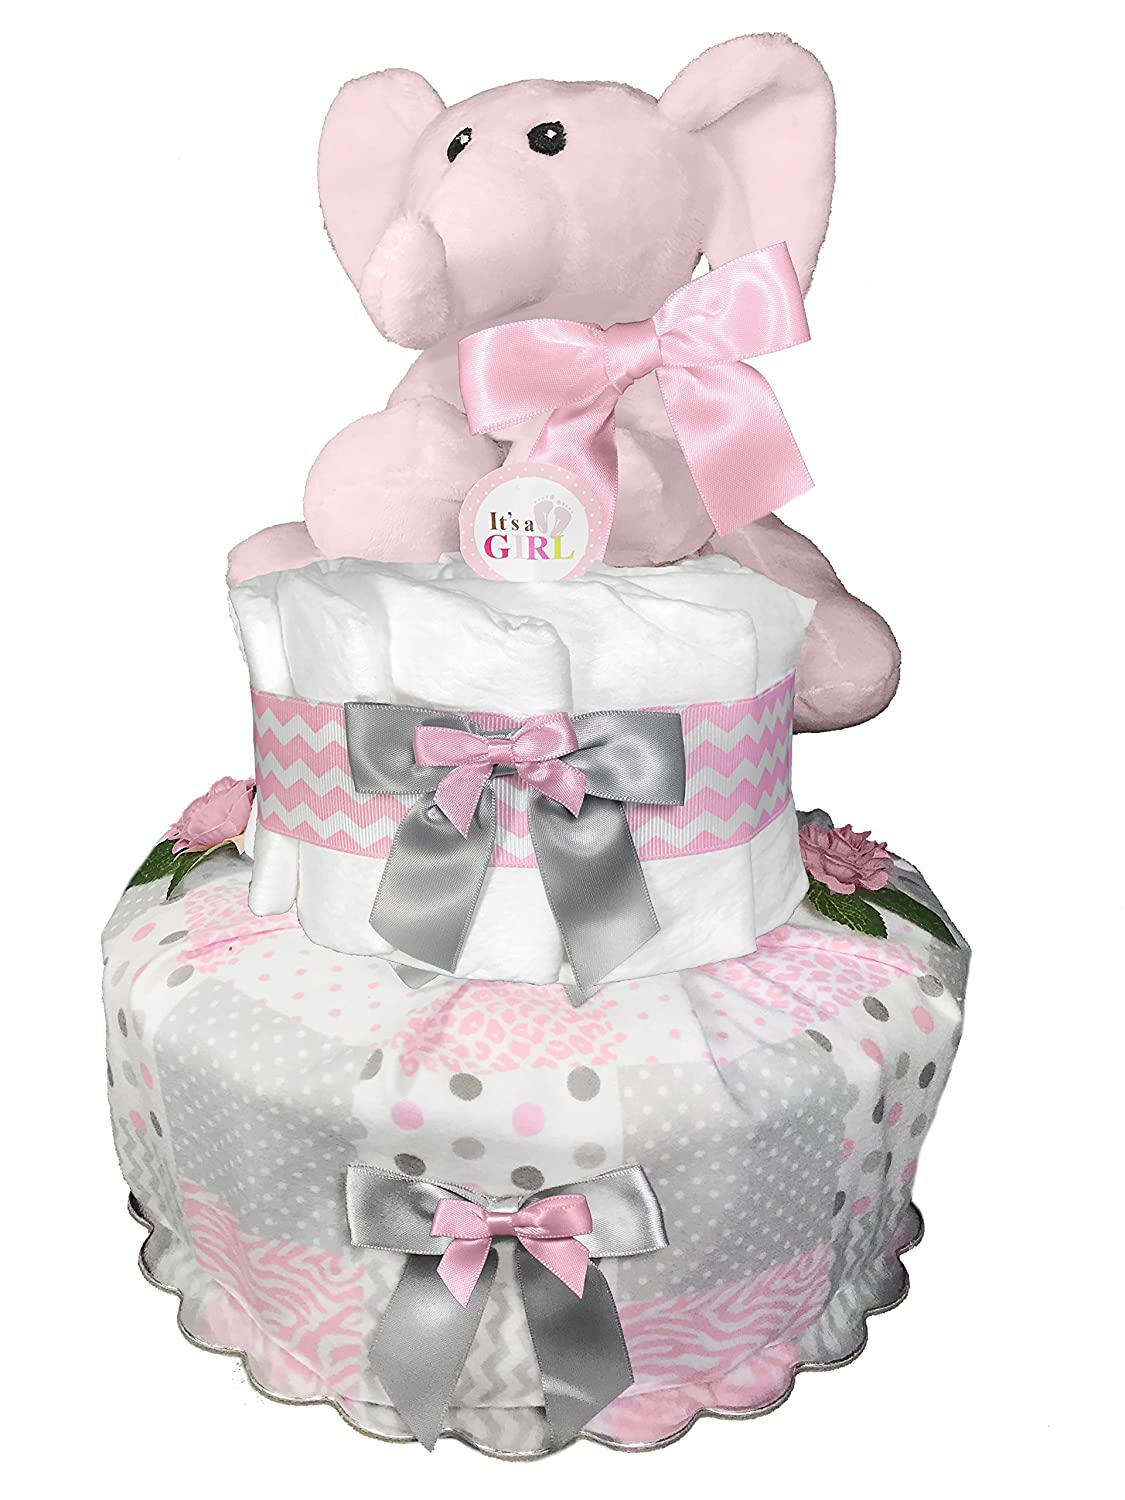 Elephant Diaper Cake - Baby Shower Gift - Centerpiece - Pink and Gray Sunshine Gift Baskets